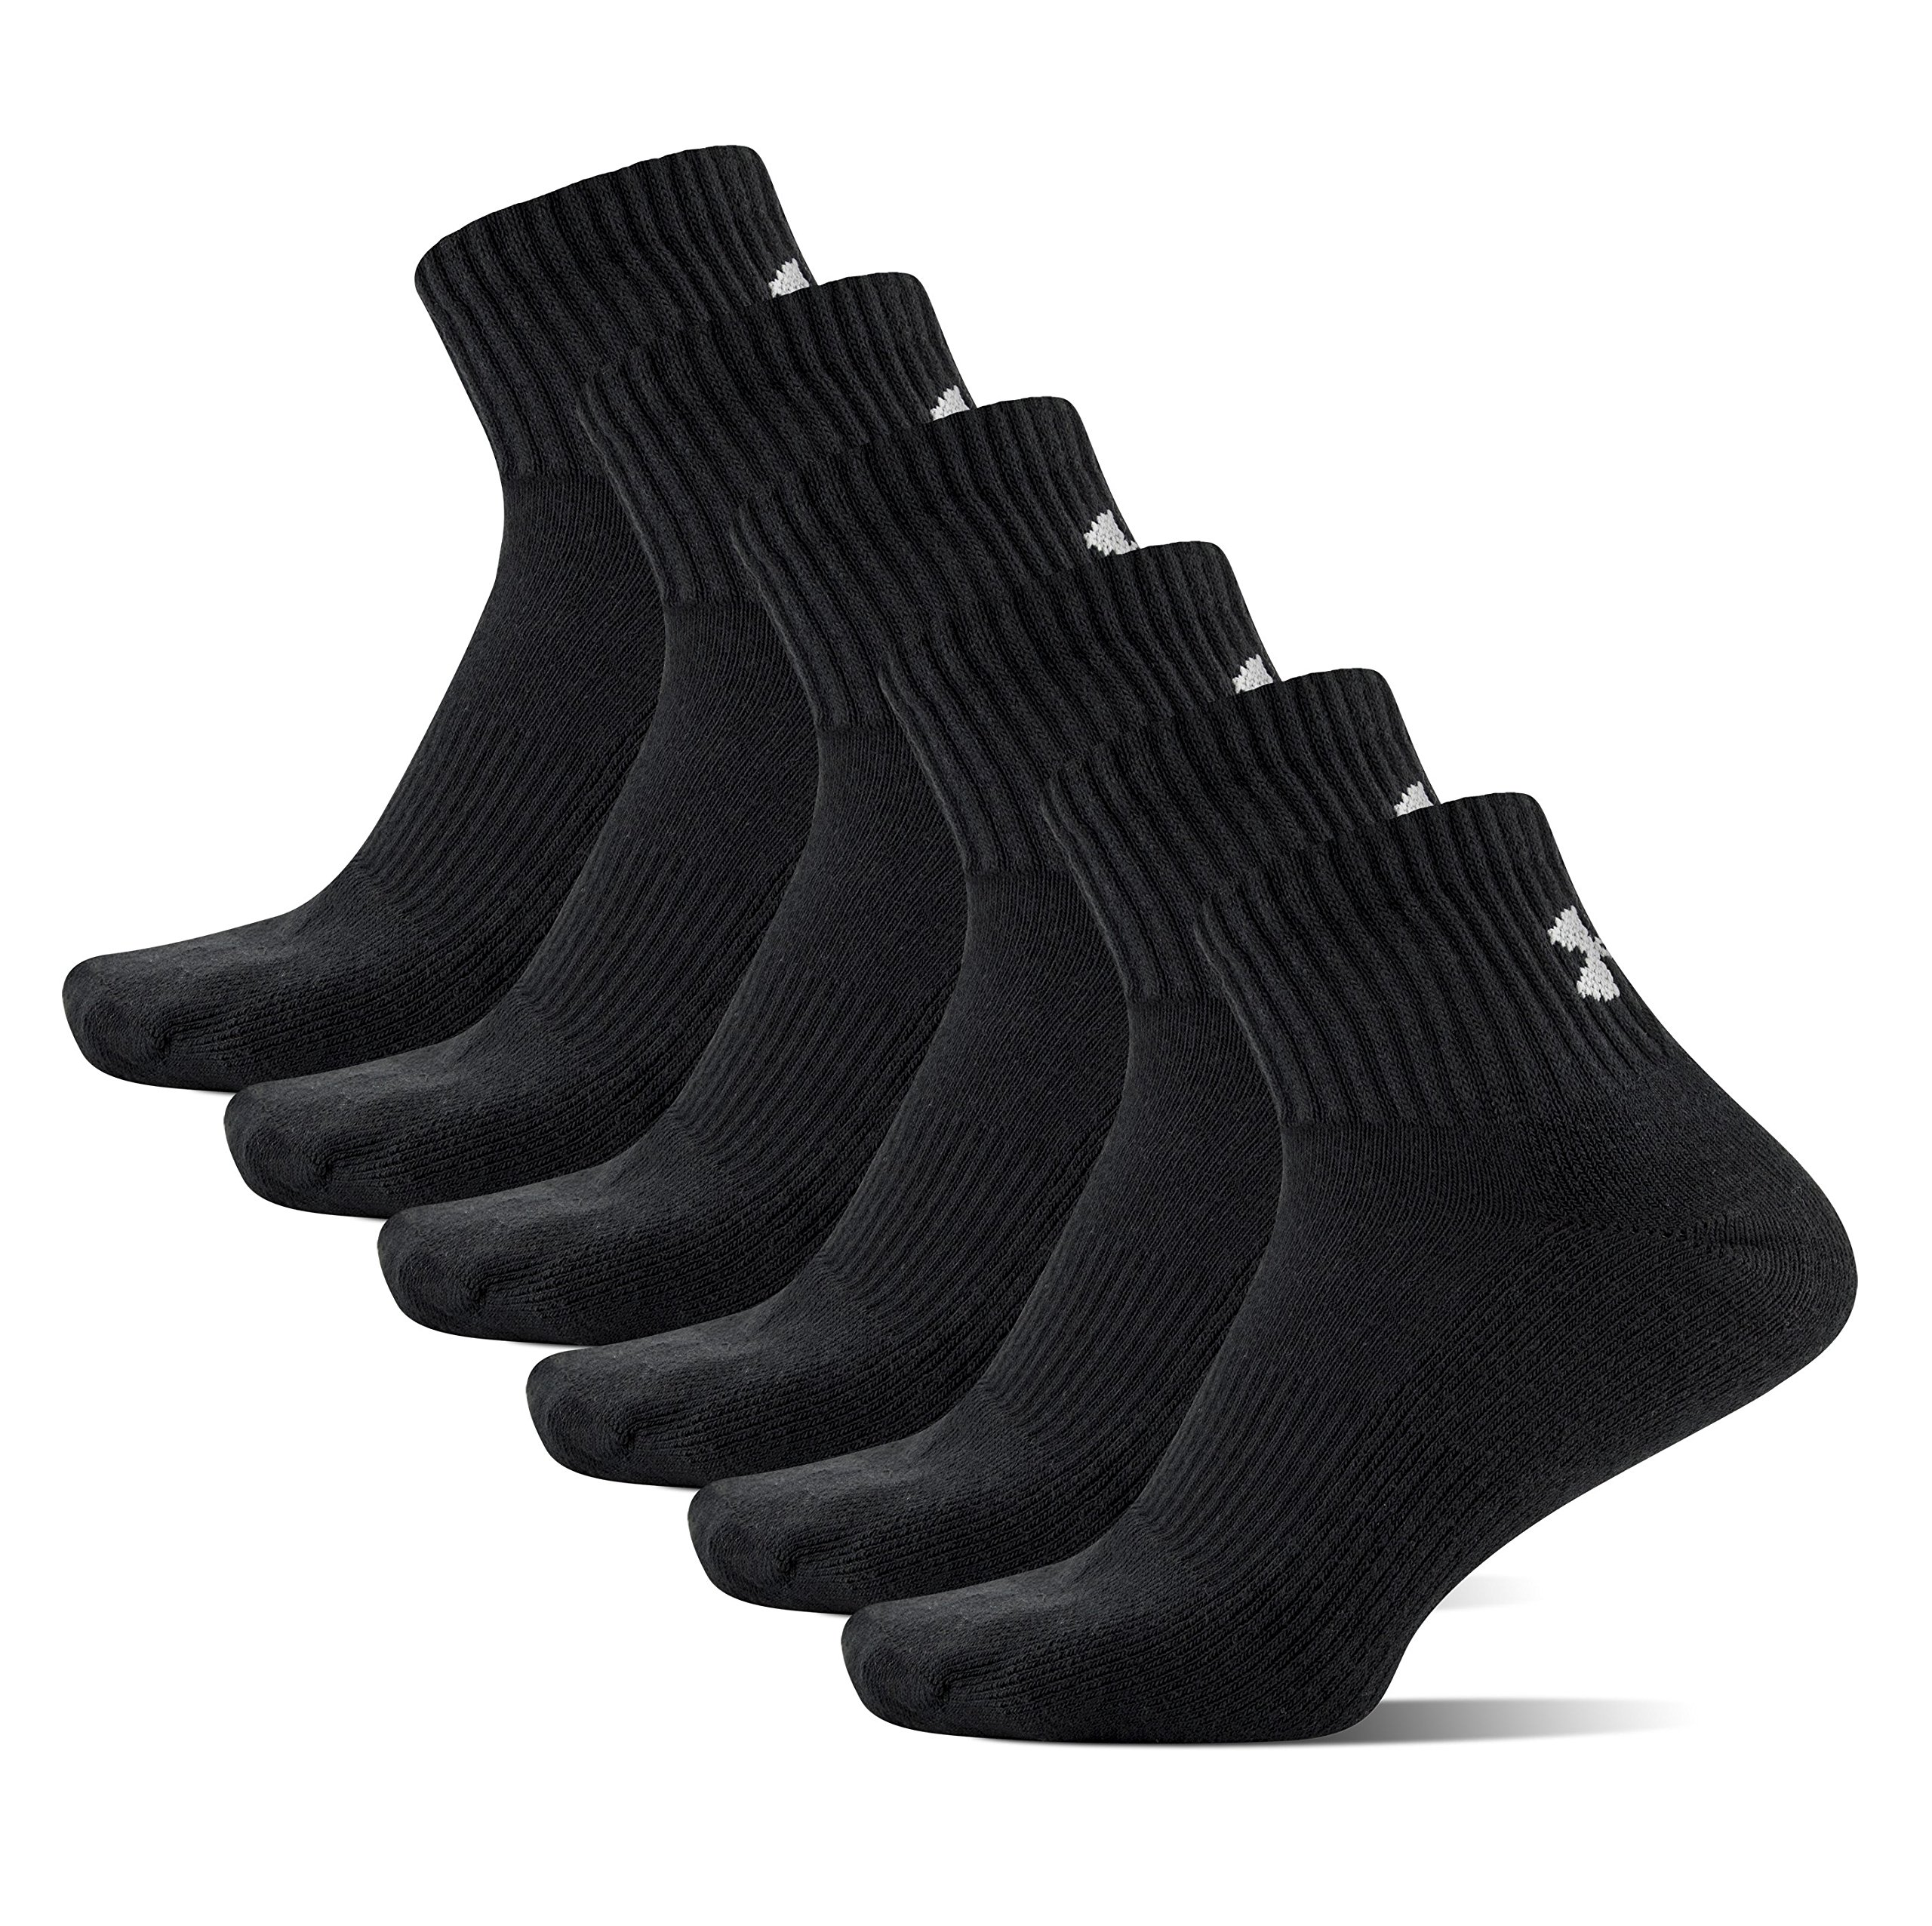 Under Armour Men's Charged Cotton 2.0 Quarter Socks, Black/Gray, Large (Pack of 6) by Under Armour